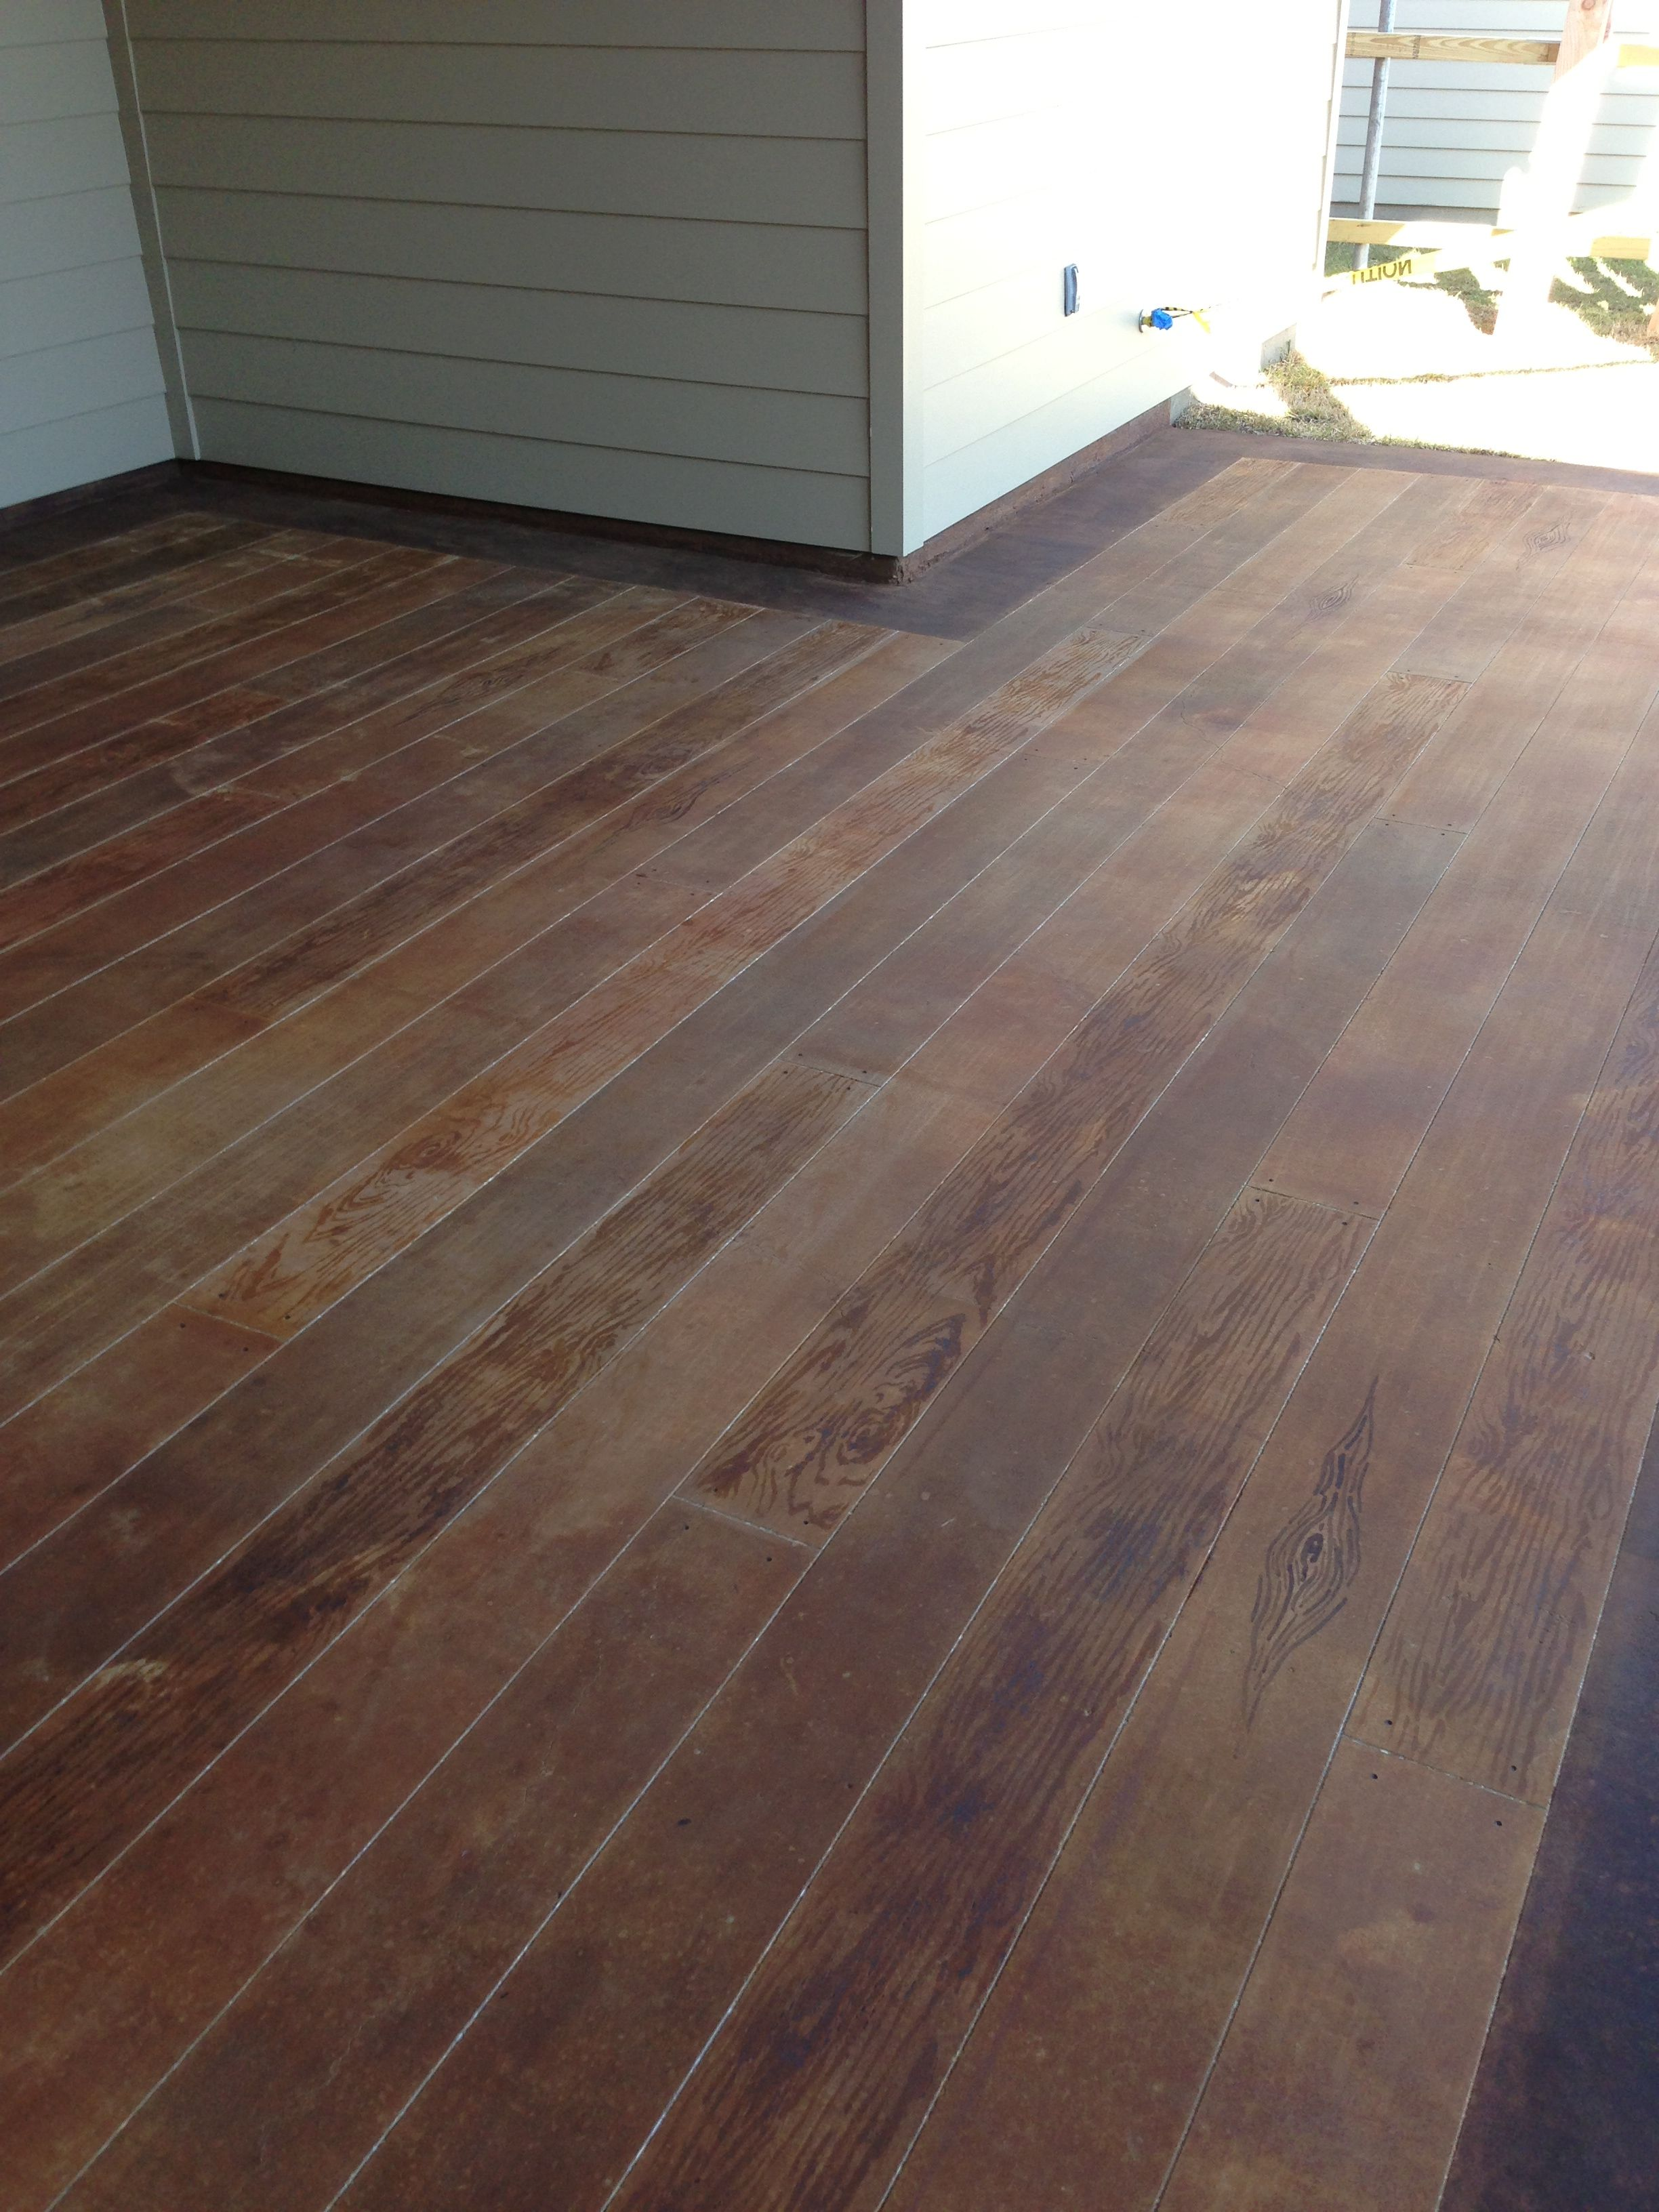 Concrete Wood Look I Want This For The Back Patio Concrete That Looks Like Wood Patio Flooring Wood Stamped Concrete Concrete Wood